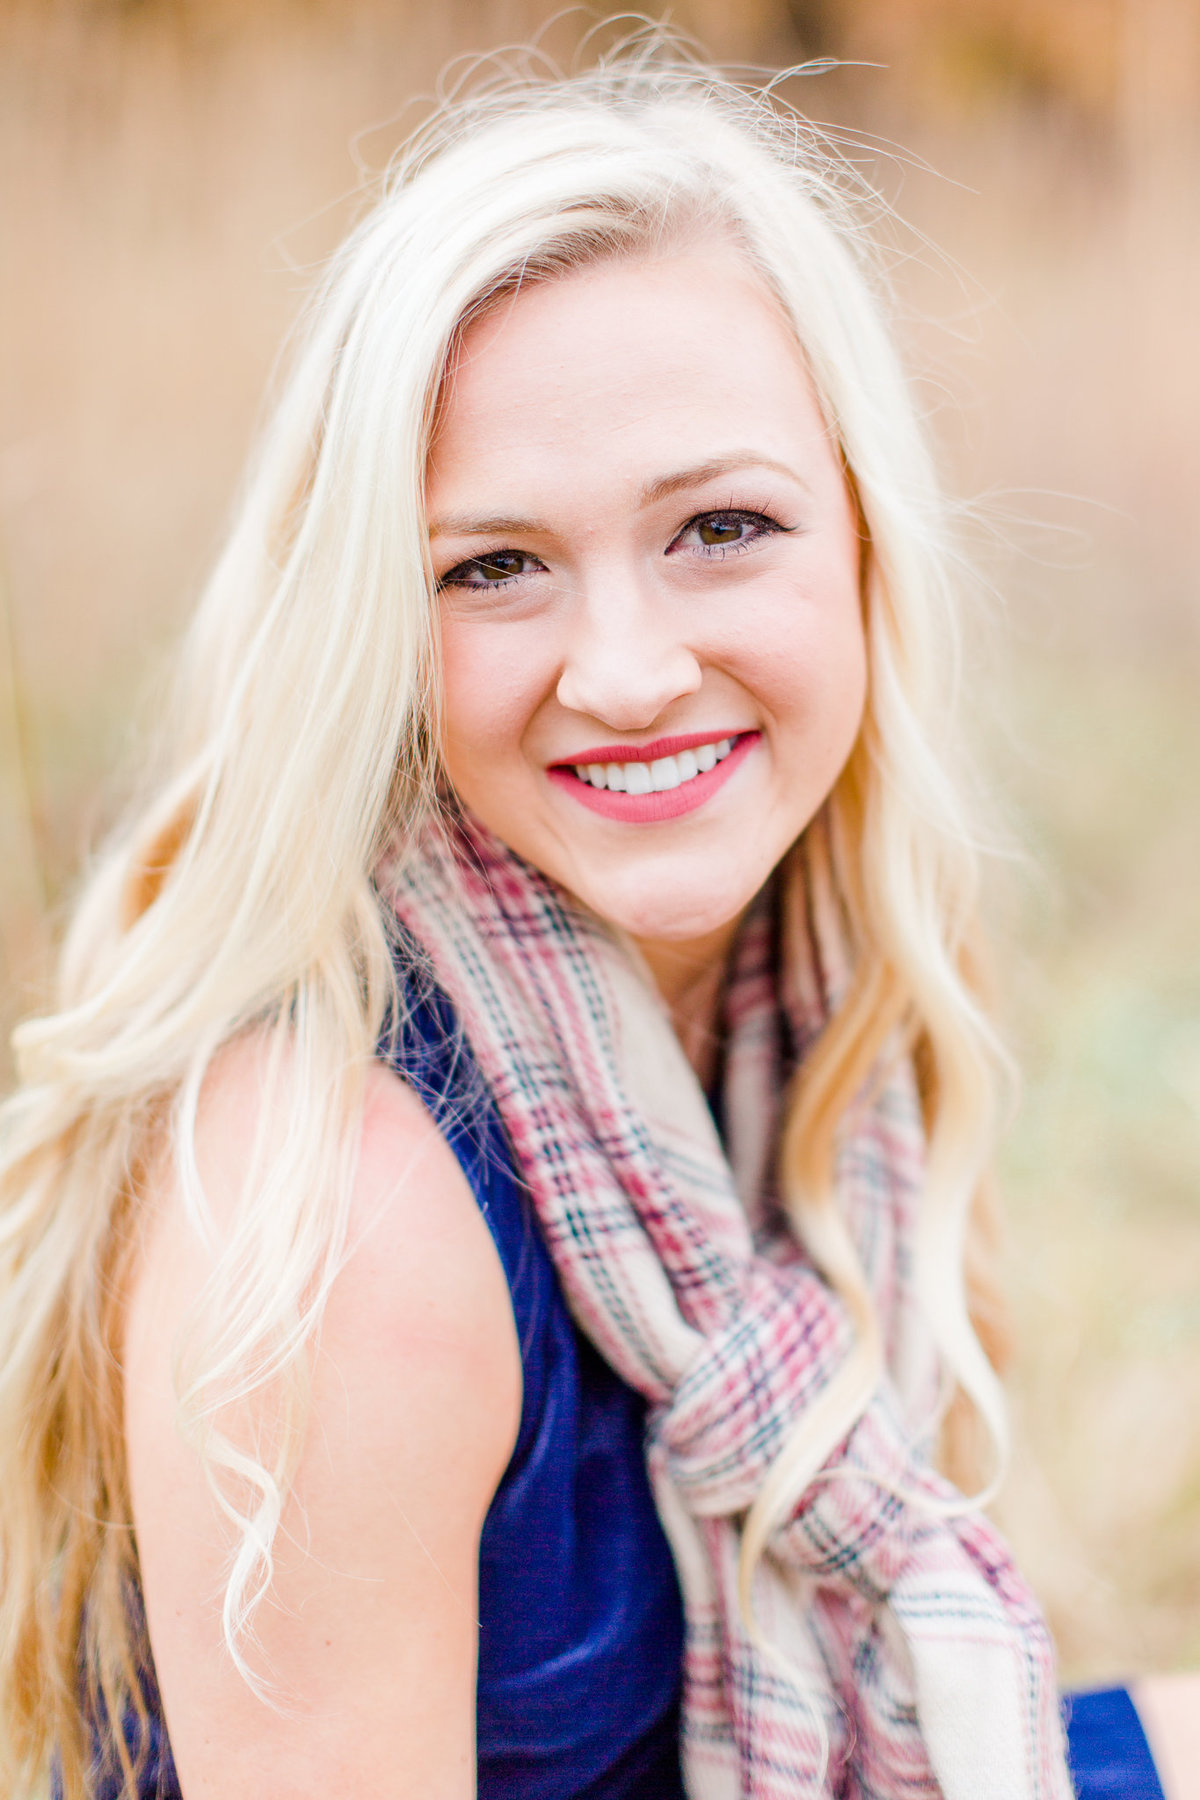 Tulsa-Oklahoma-Senior-Photographer-Holly-Felts-Photography-35